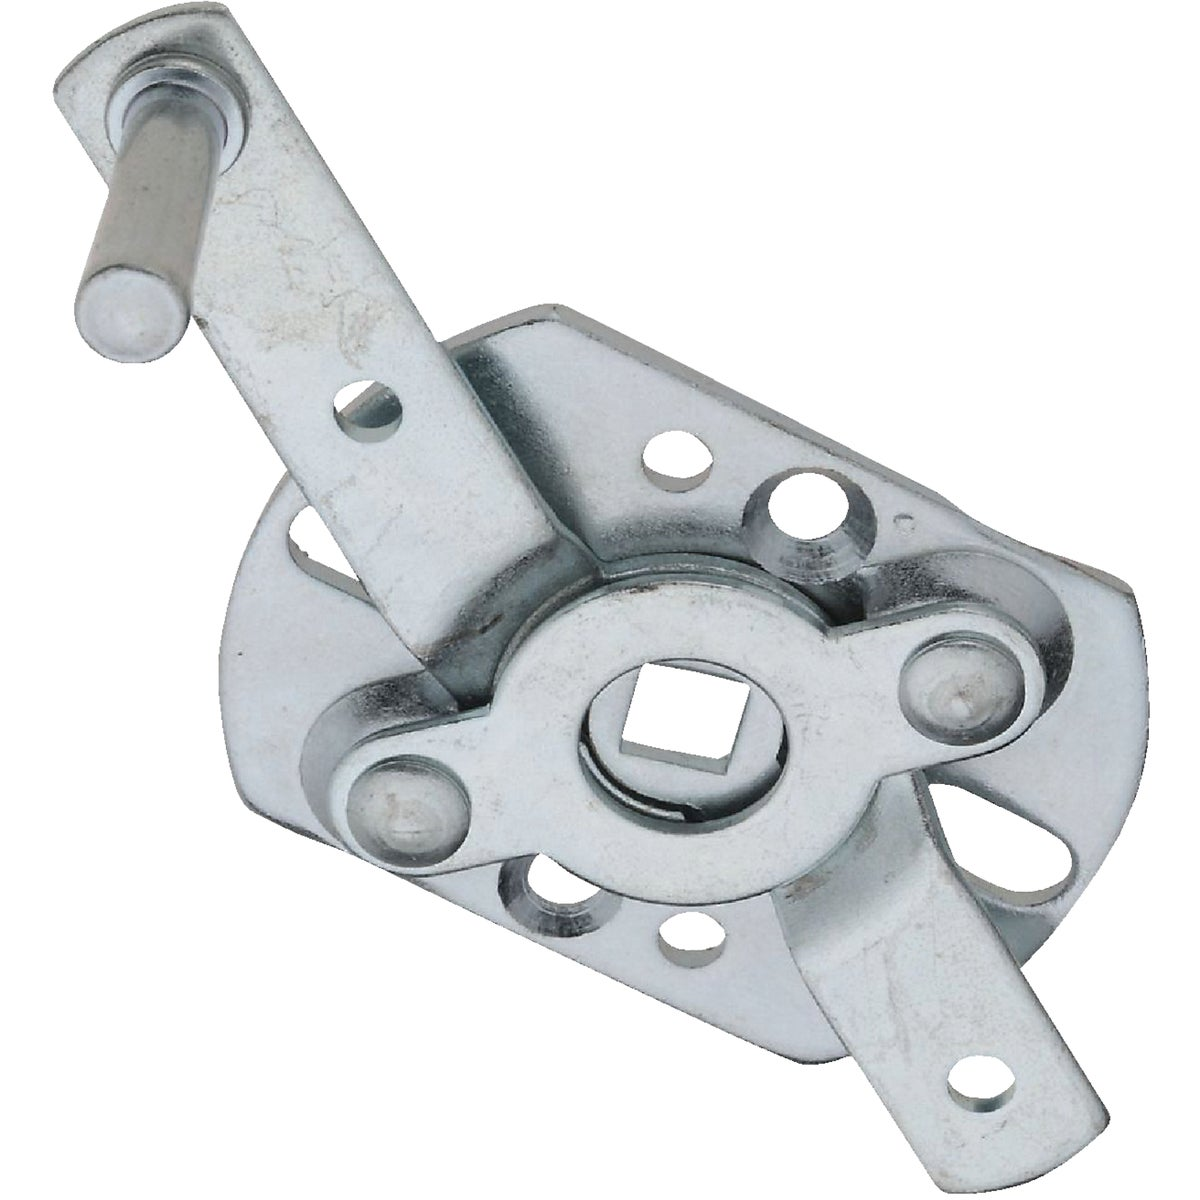 National Mfg. SWIVEL LOCK N280701